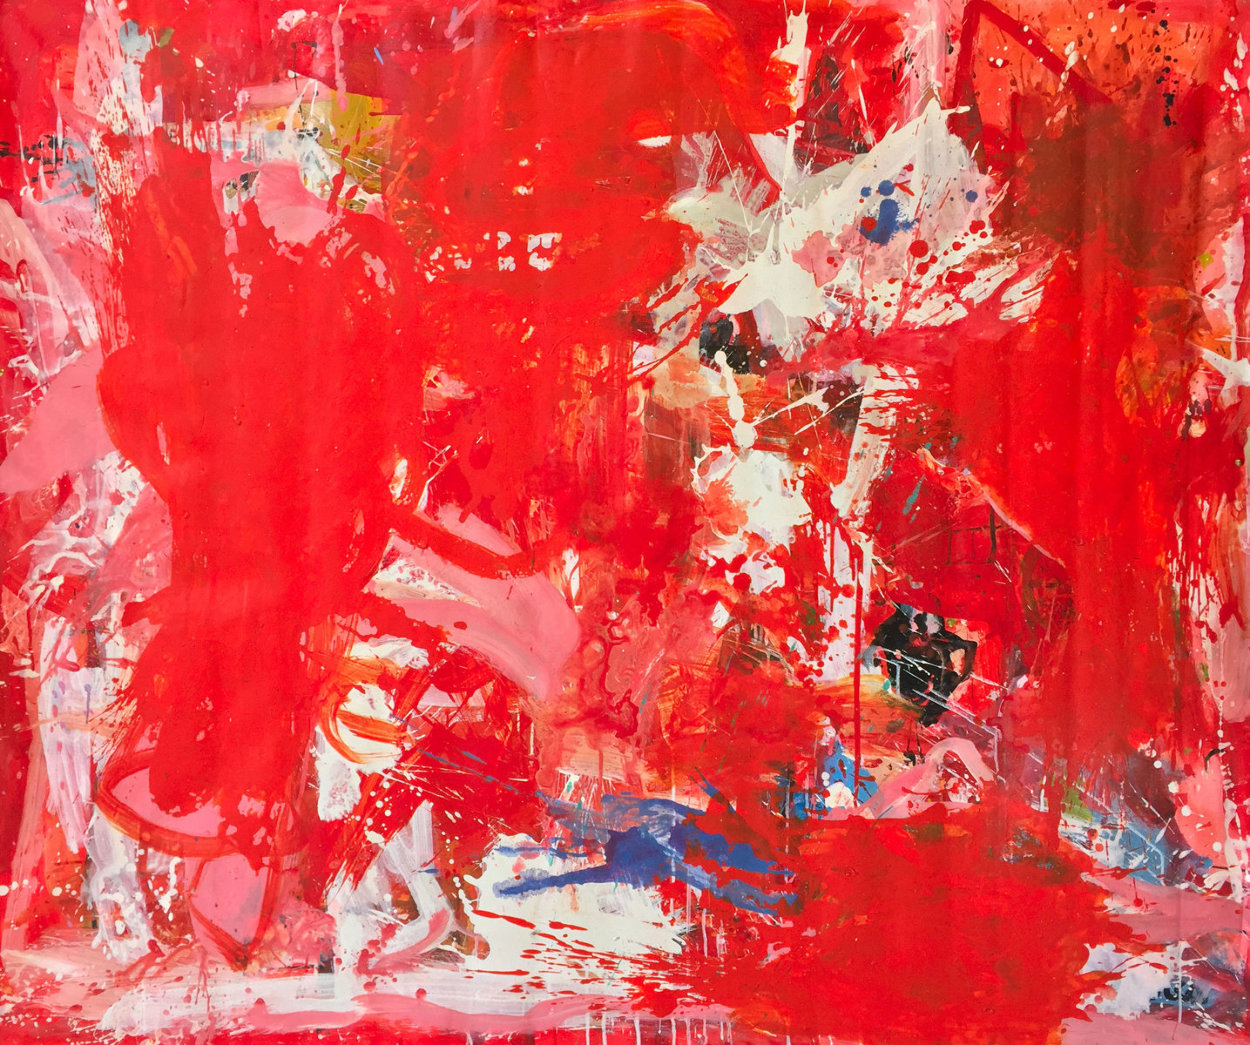 Rehearsals 2019 72x62 Super Huge Original Painting by Costel Iarca